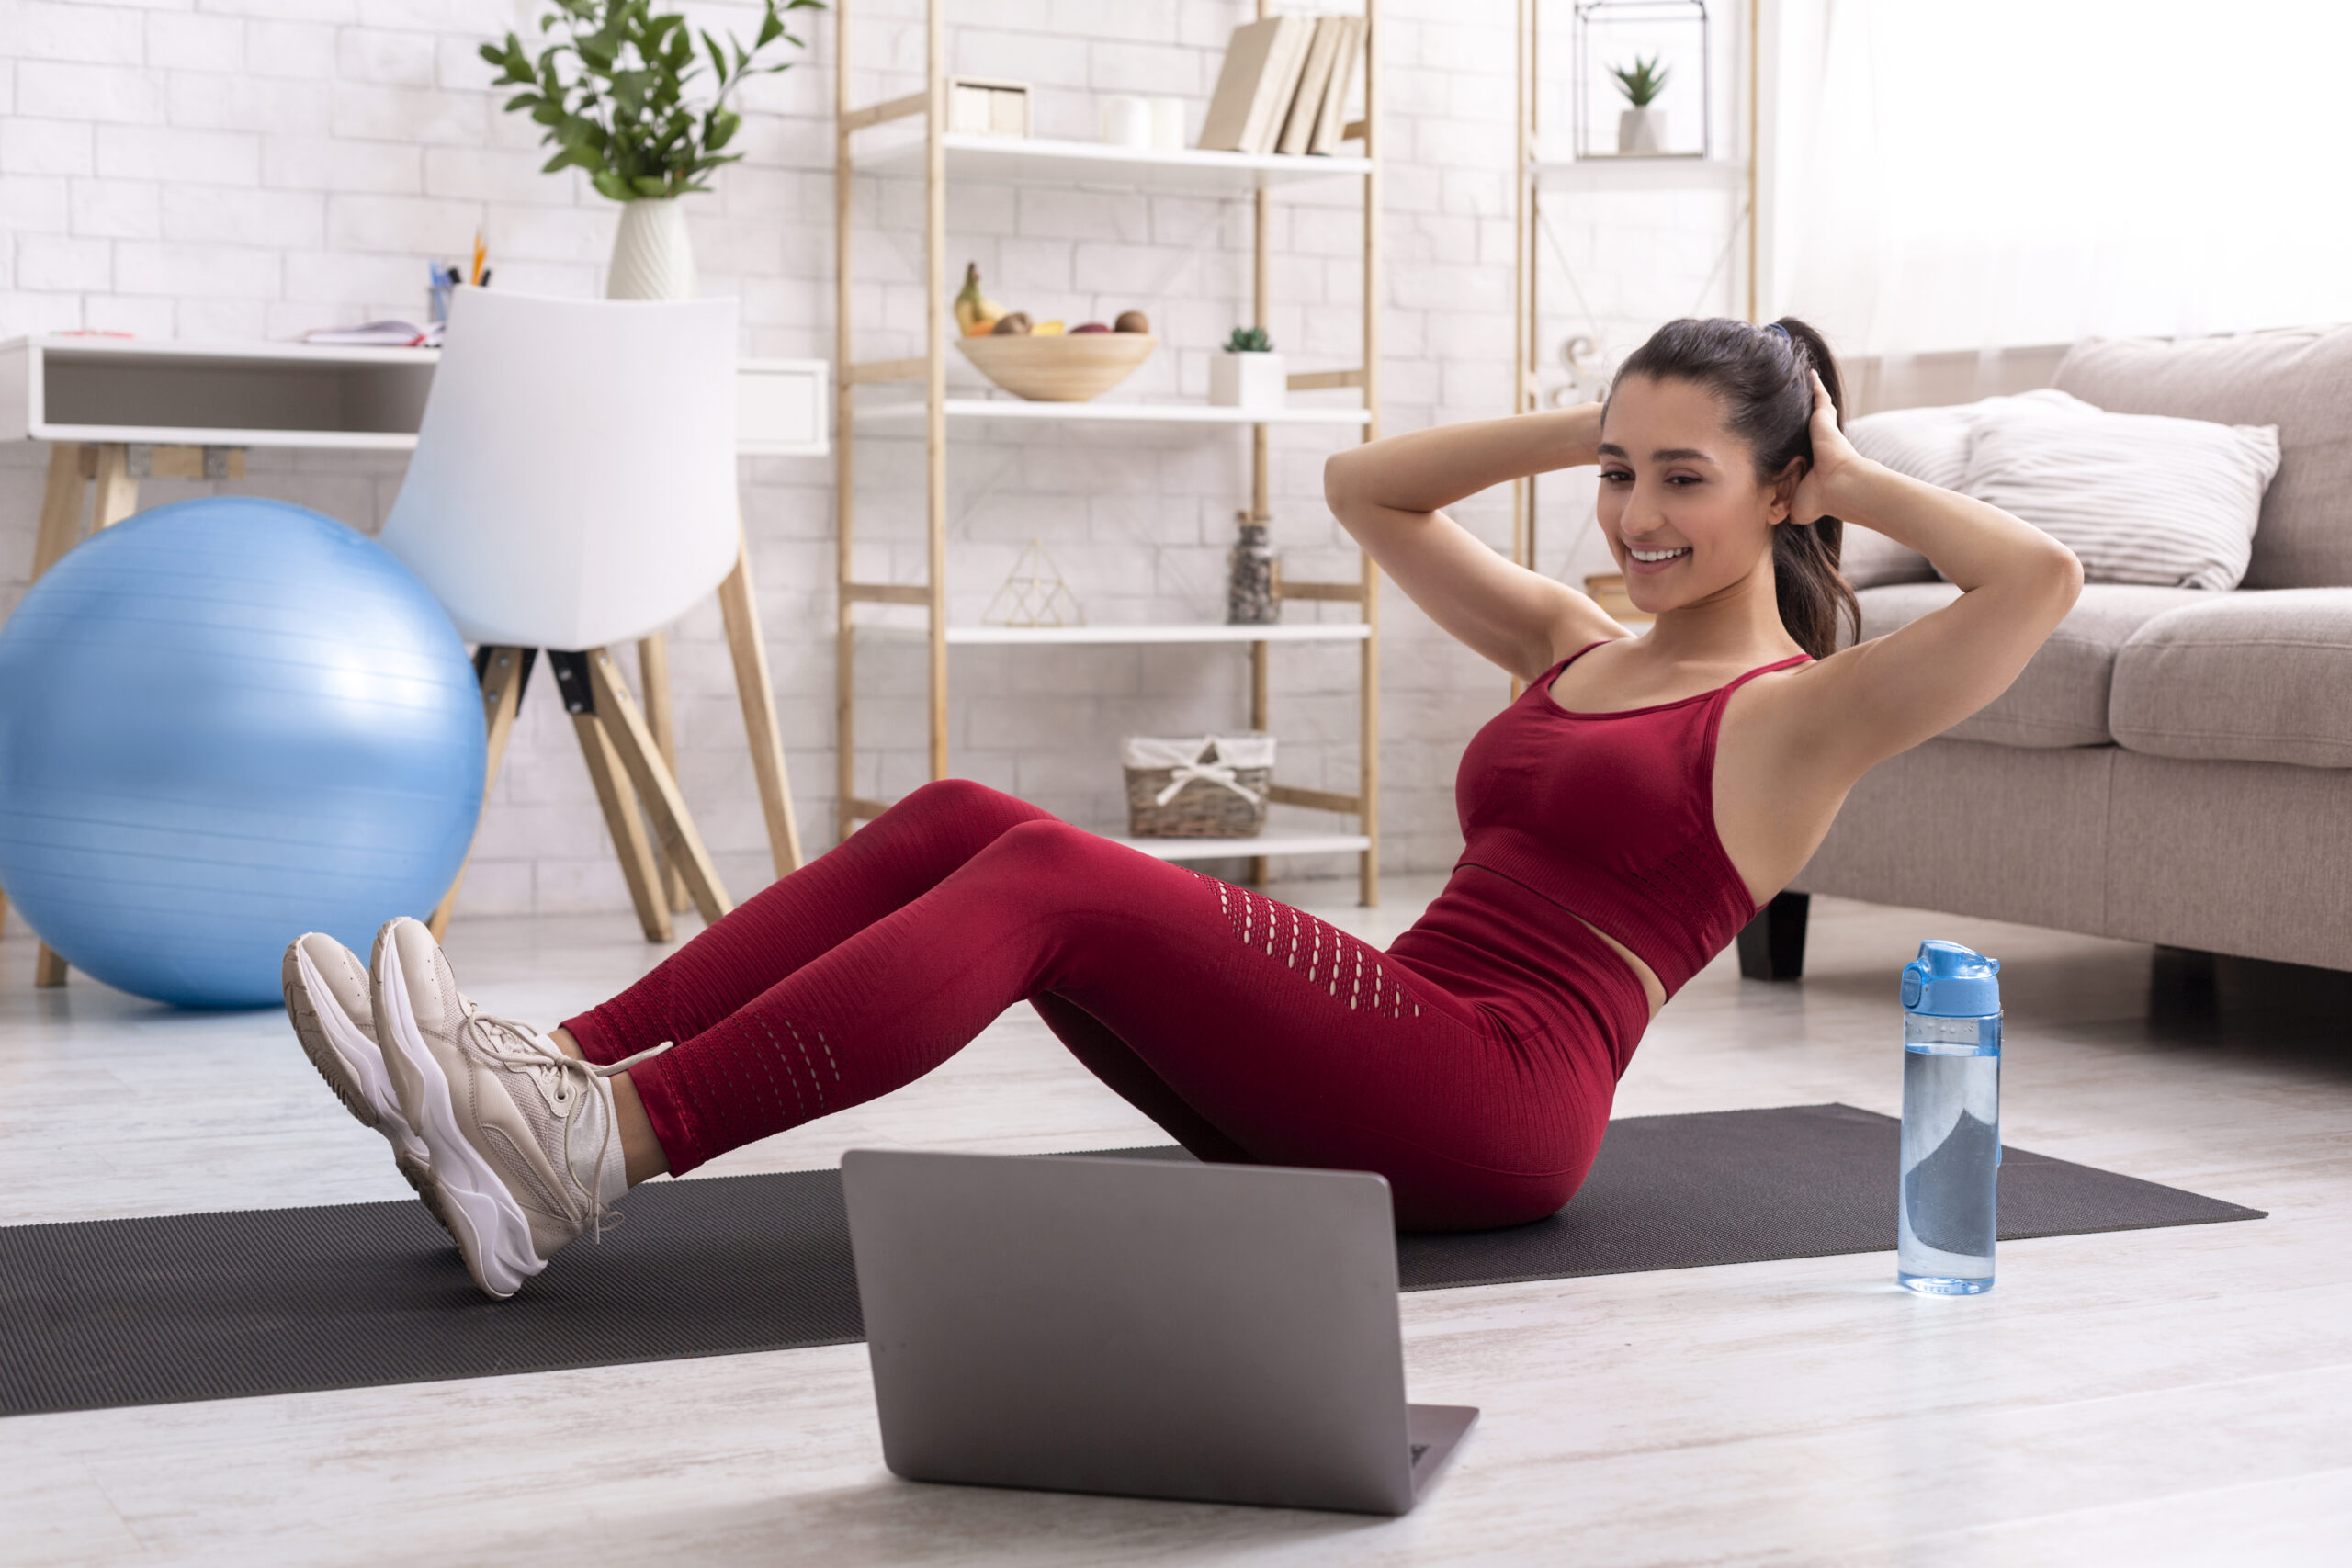 Fitness girl on her online session with personal trainer, doing abs exercises at home